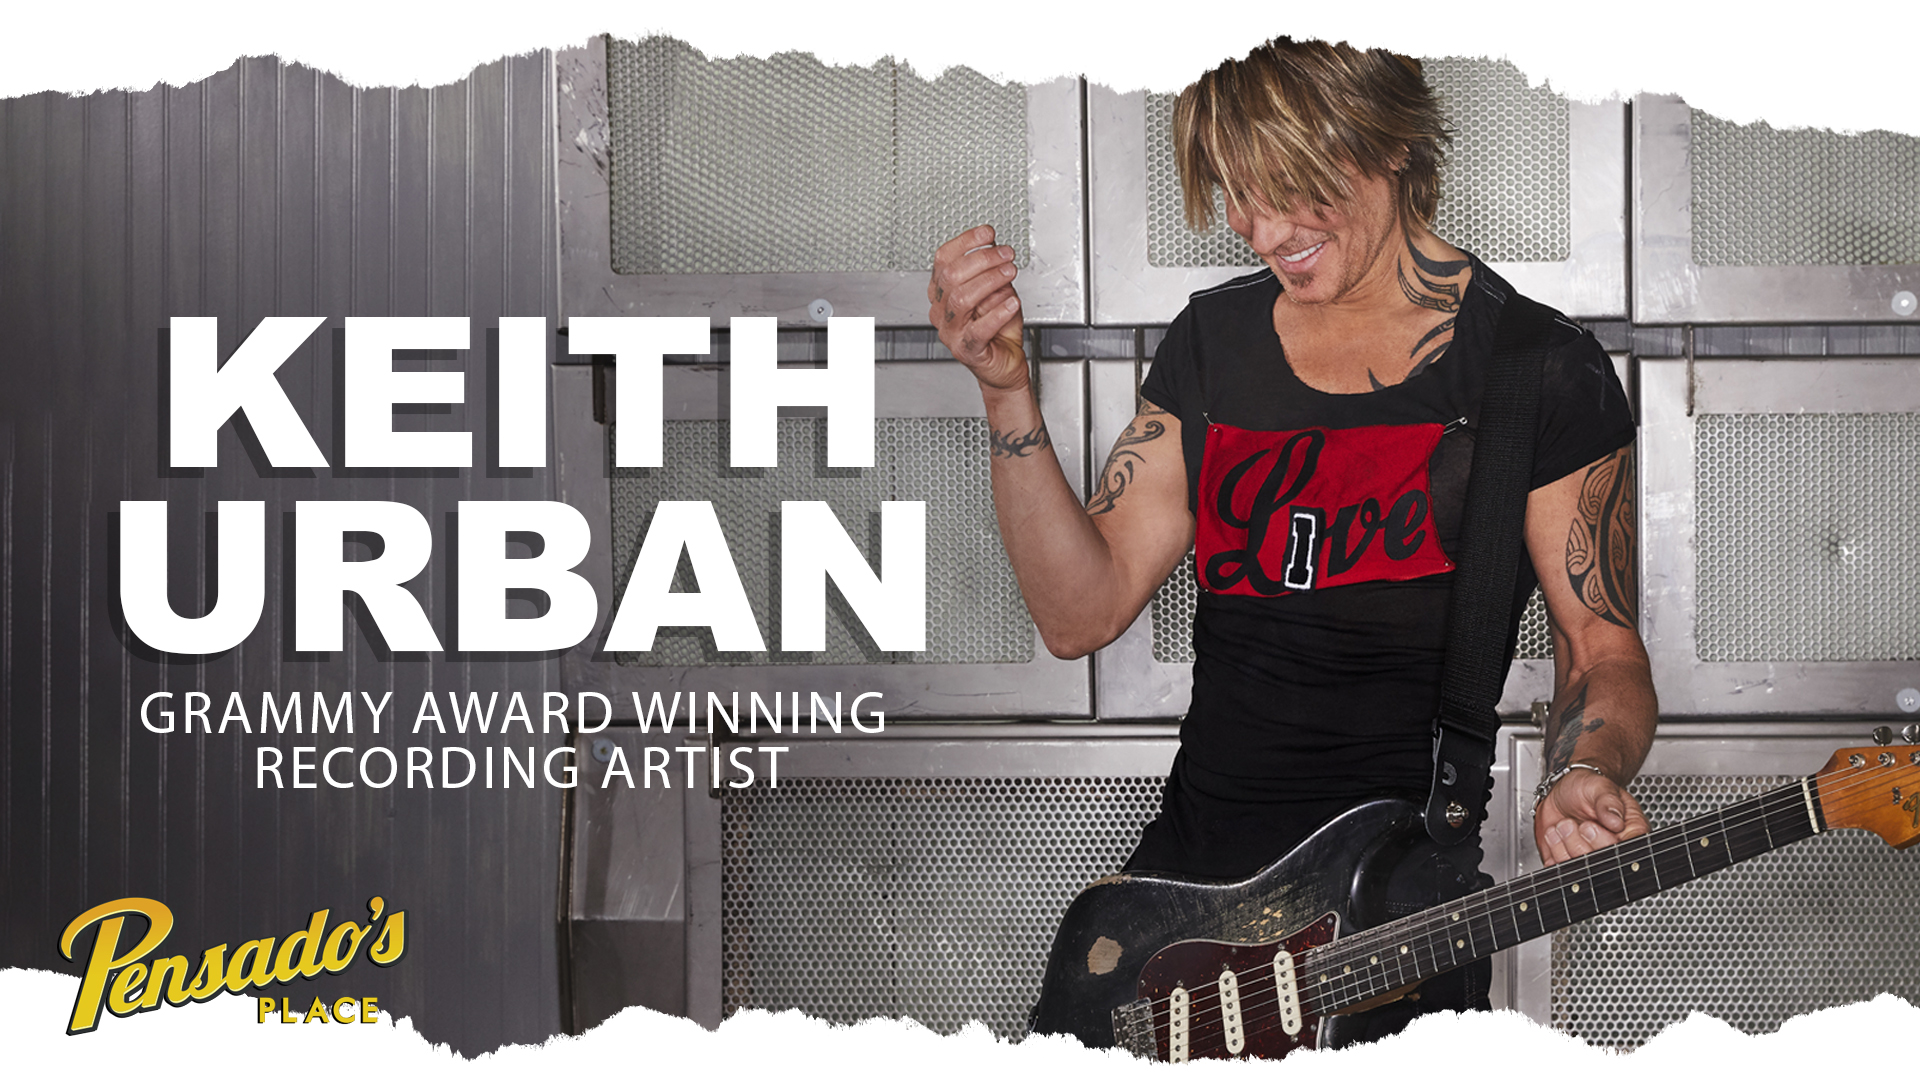 Grammy Award Winning Recording Artist, Keith Urban